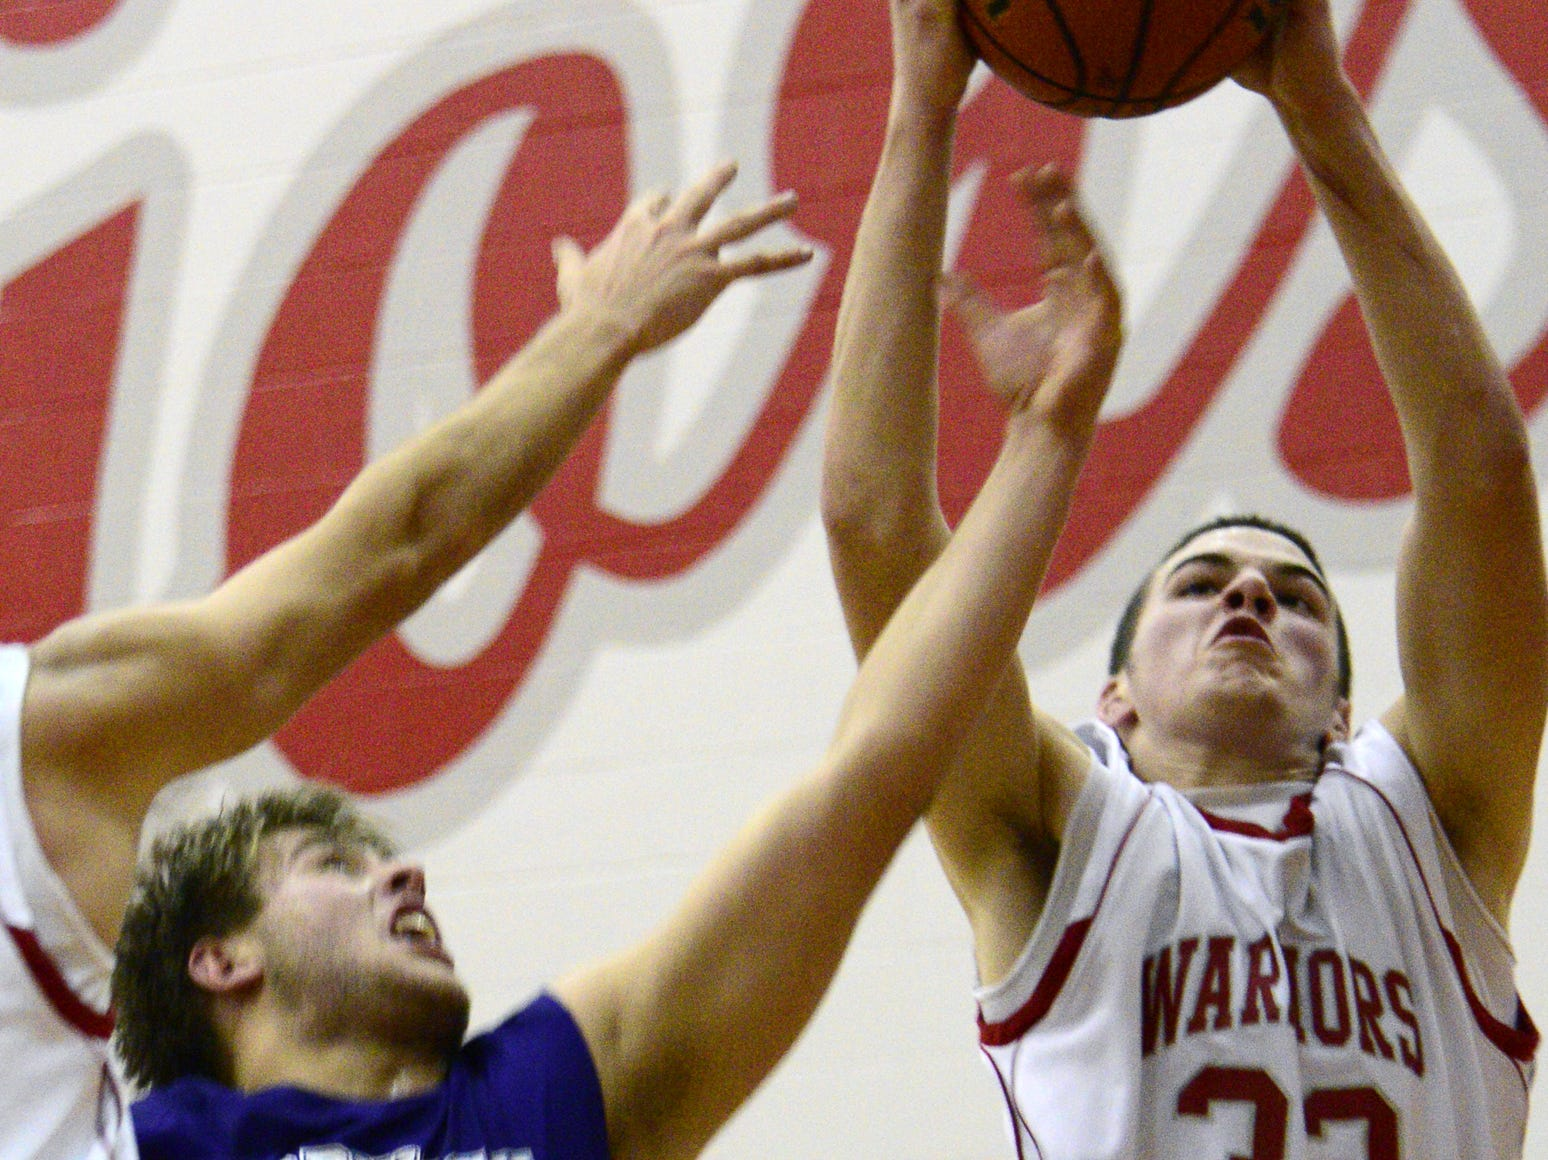 2012: Chenango Valley's Zach Collins grabs the rebound in front of Norwich's Grant Brightman in the second half Wednesday night.